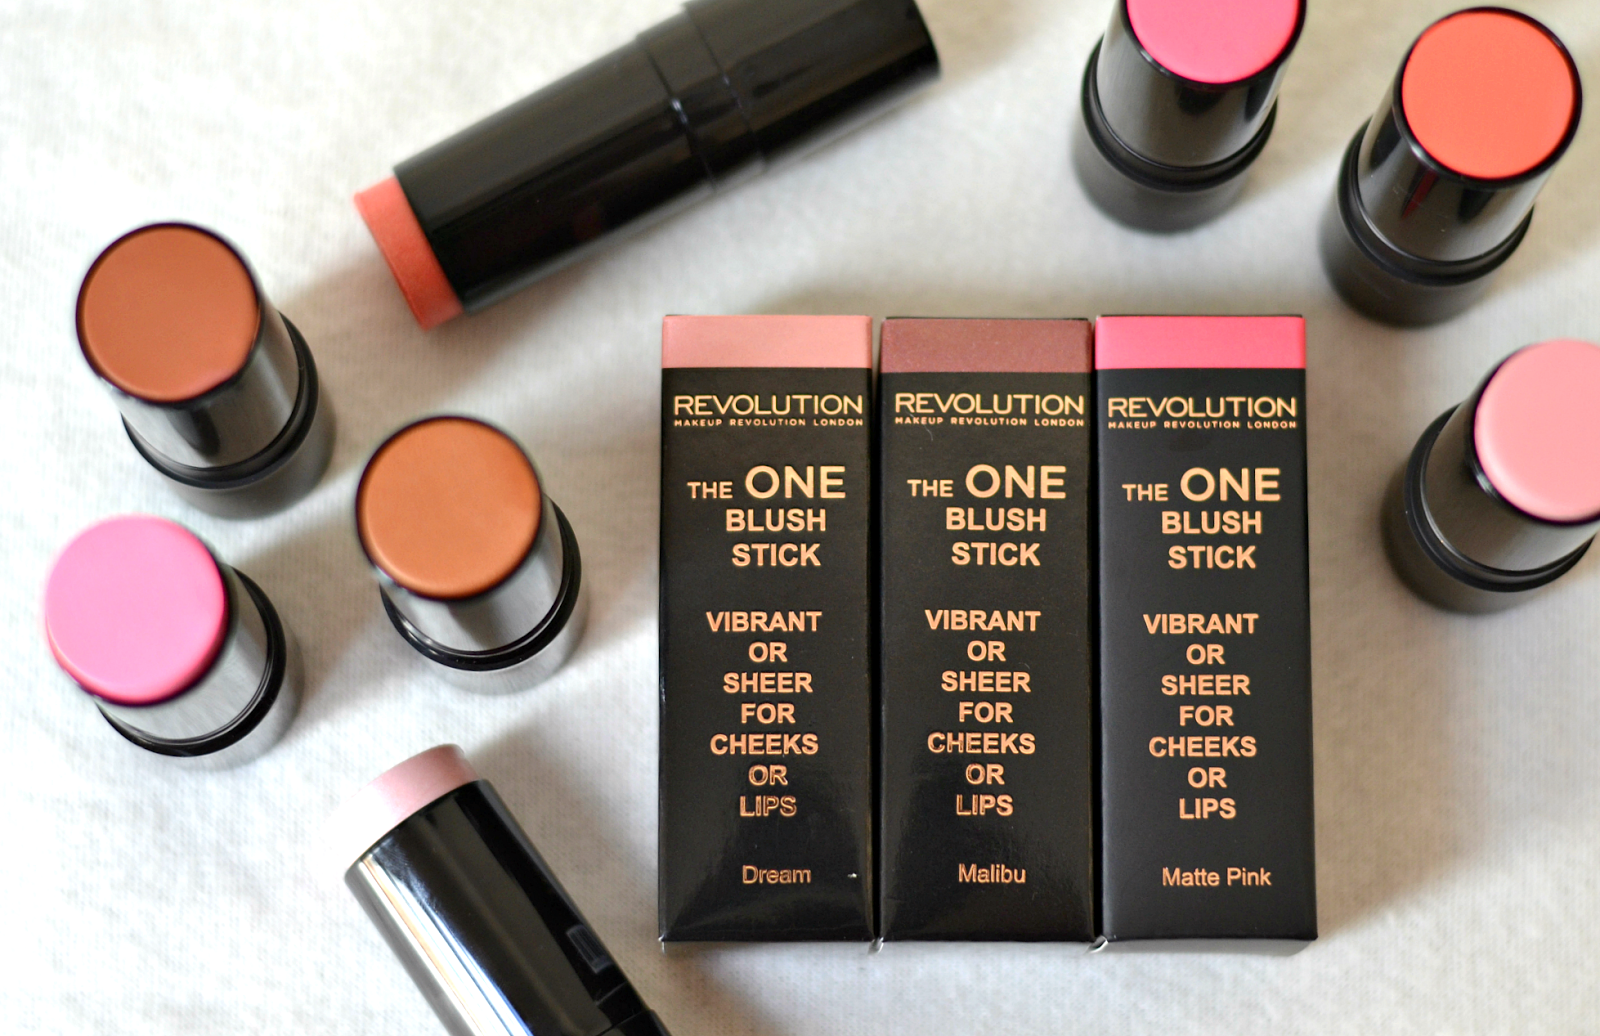 Makeup Revolution 'The One' Blush Stick An Affordable